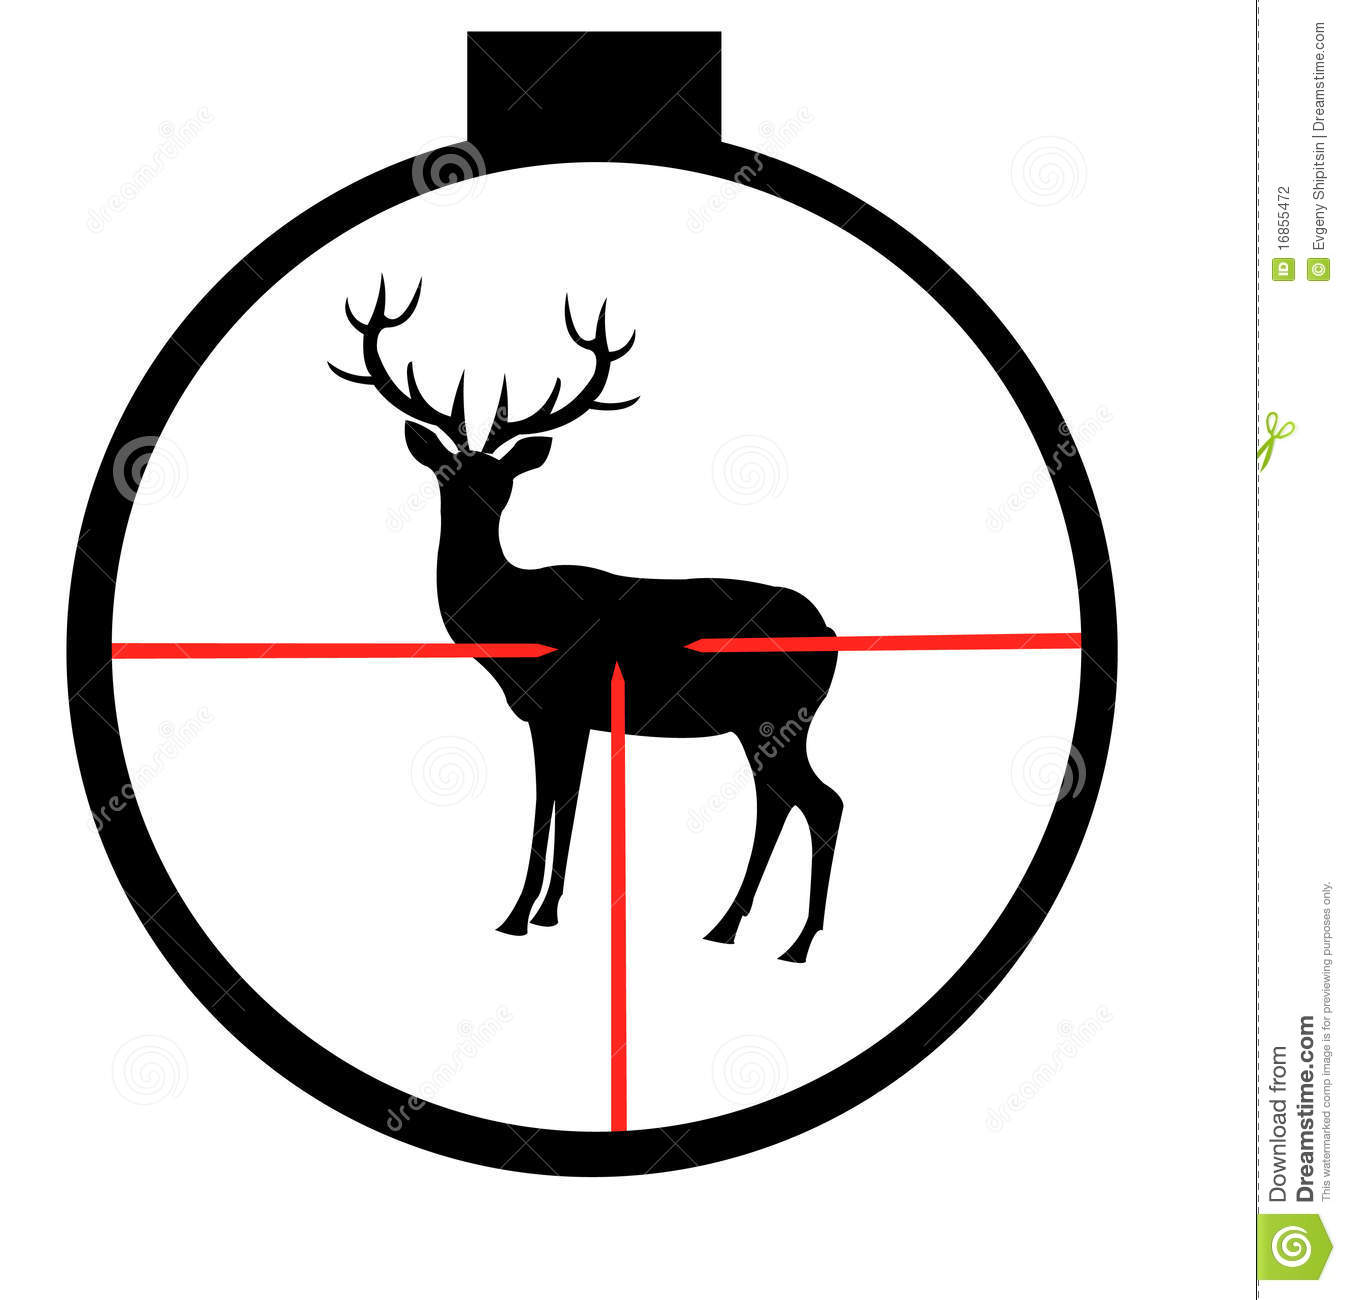 Hunting clipart deer scene. Cliparts free download best